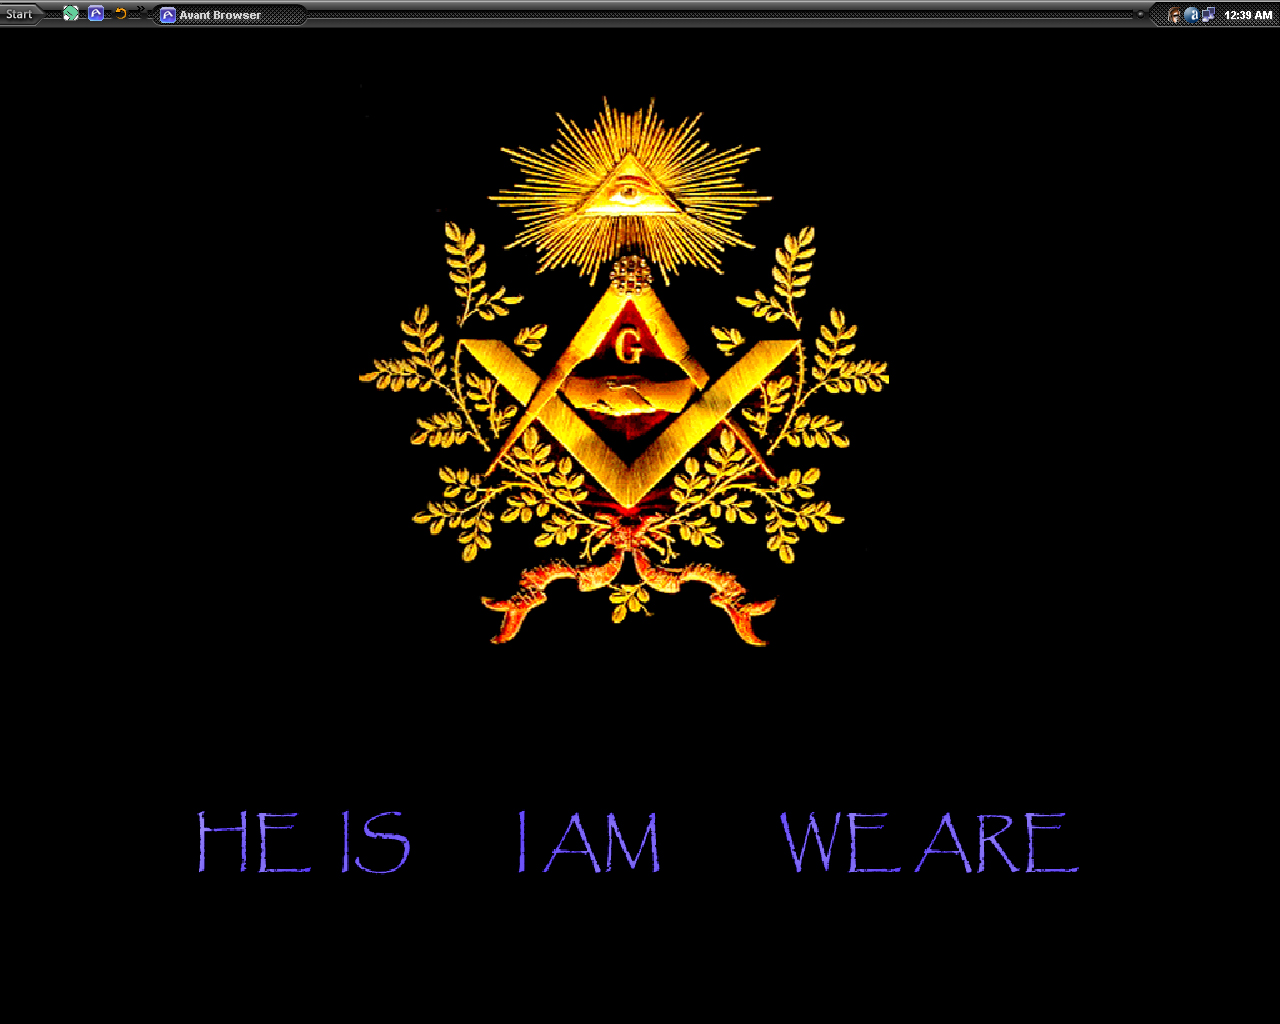 Freemason XP by Davader on DeviantArt